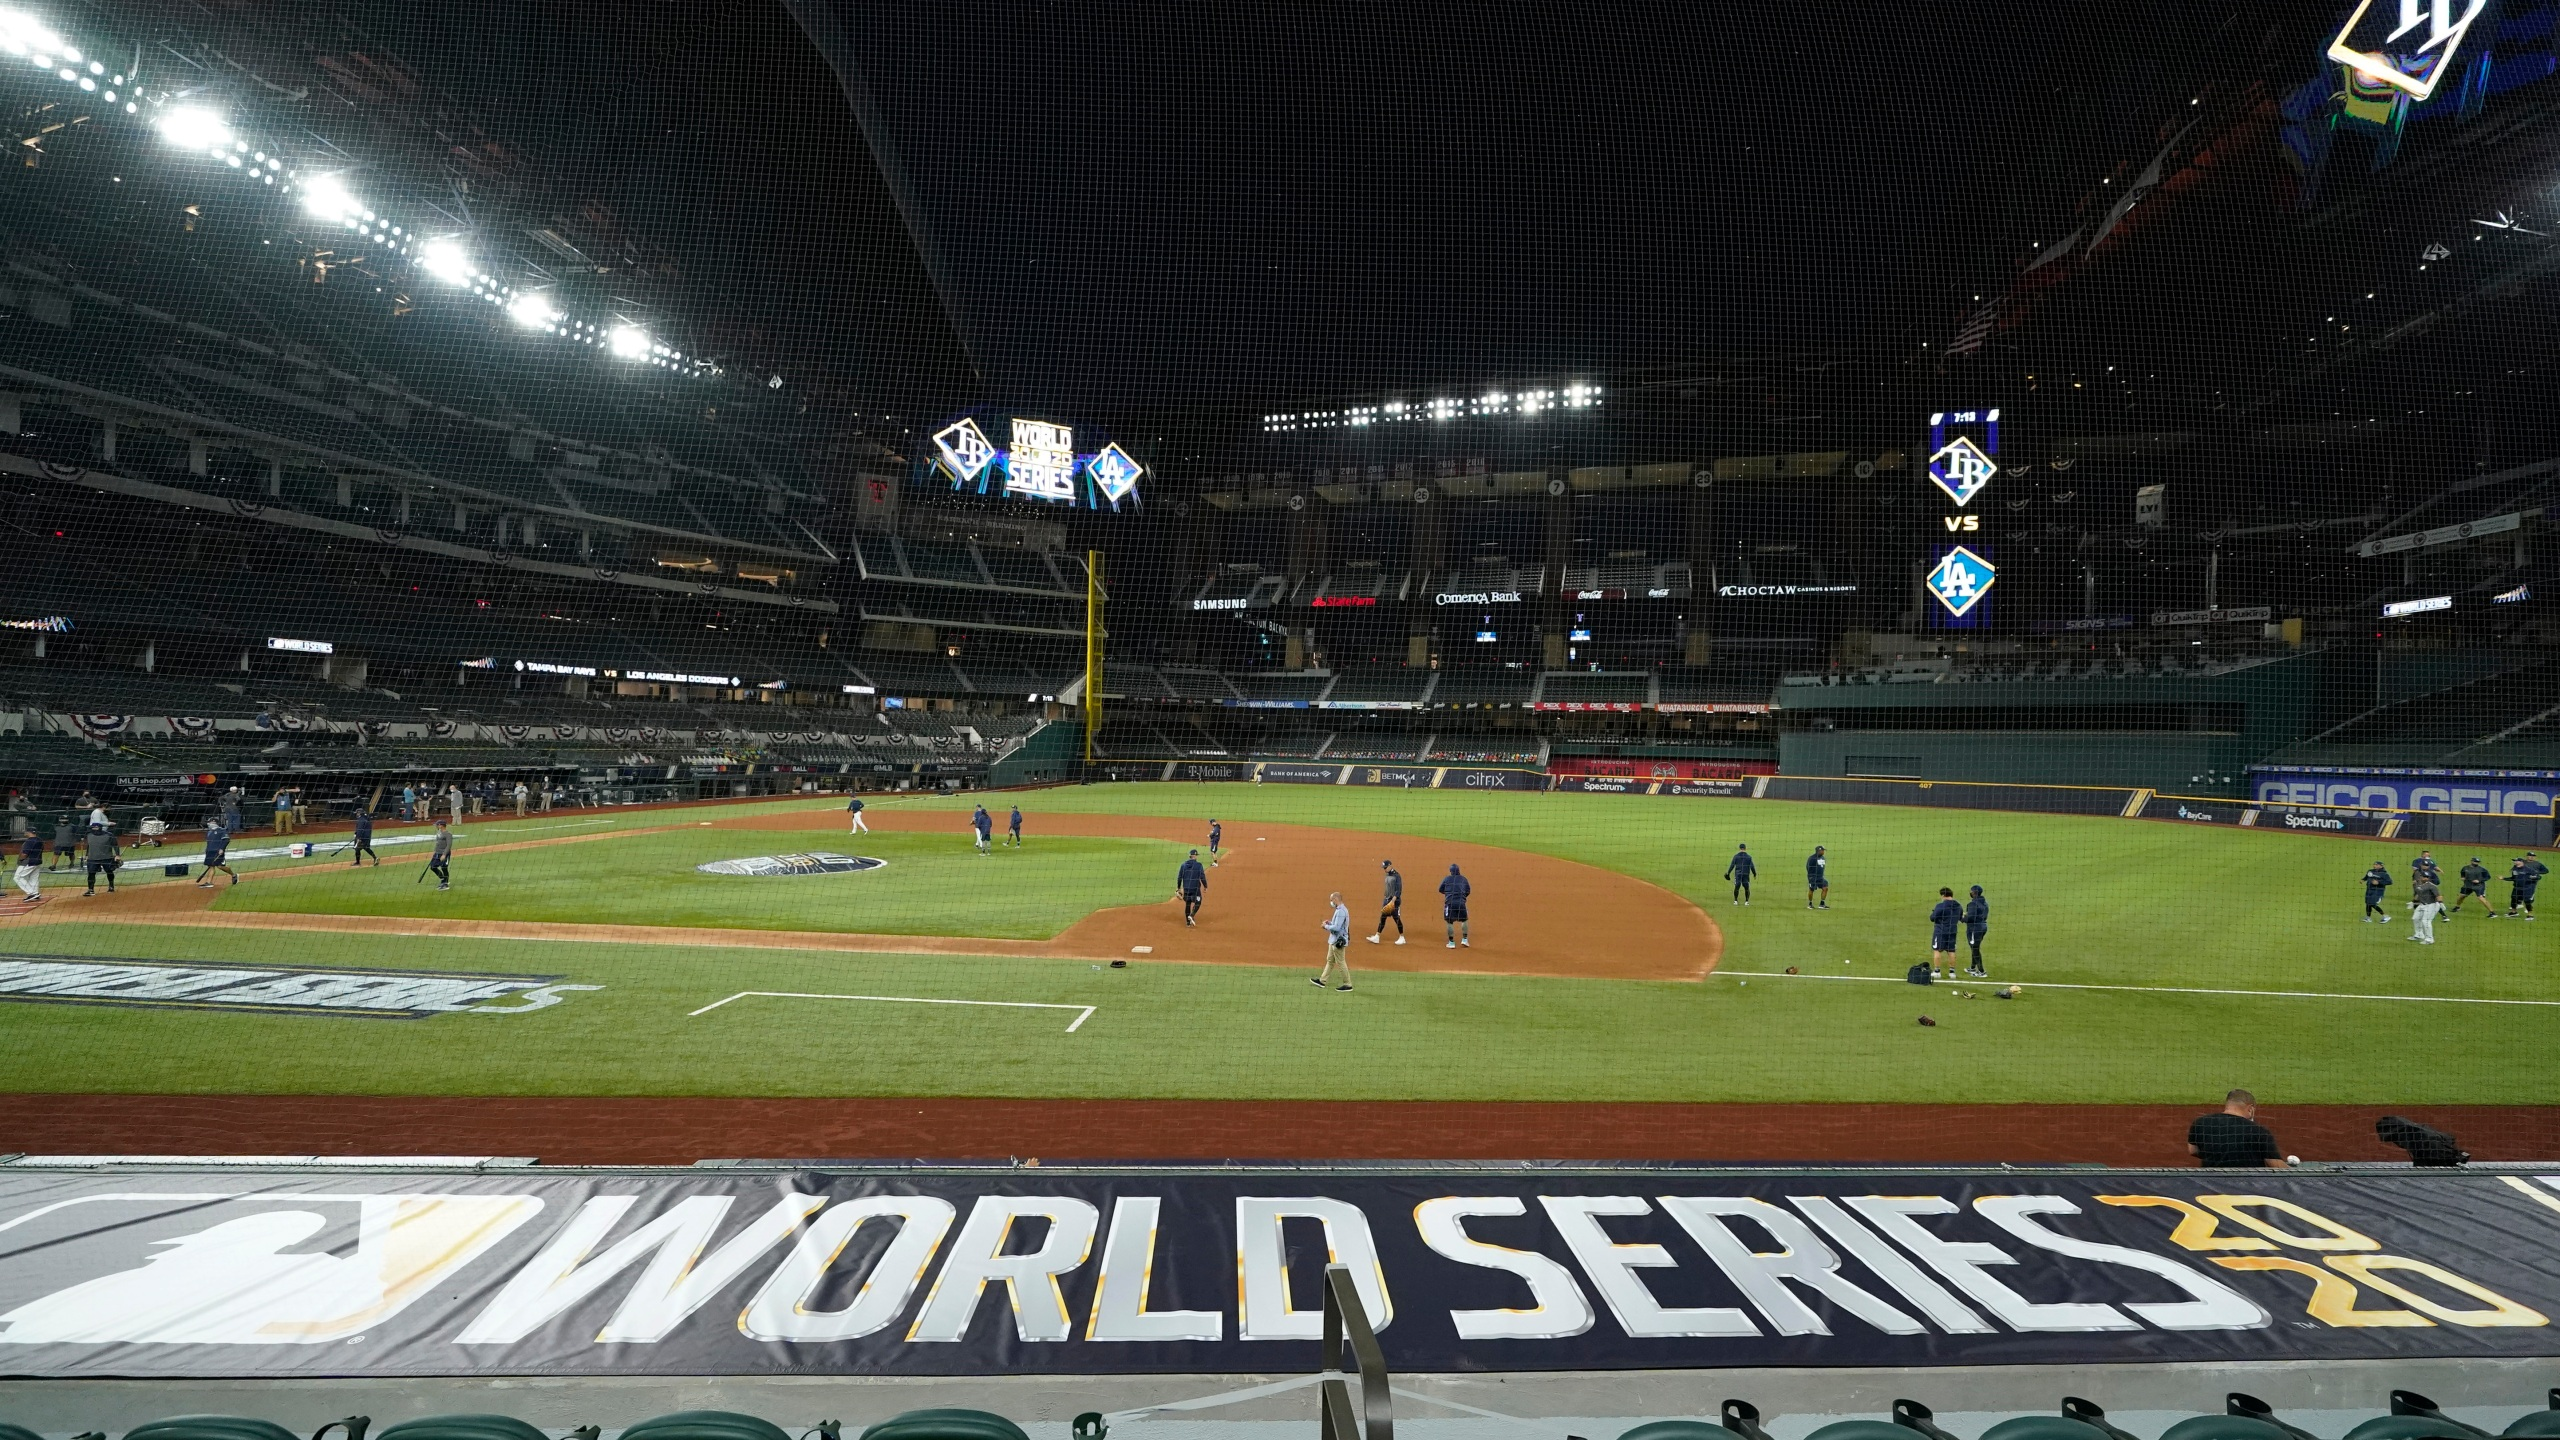 The Tampa Bay Rays practice at Globe Life Field as the team prepares for the baseball World Series against the Los Angeles Dodgers, in Arlington, Texas, Monday, Oct. 19, 2020. (AP Photo/Eric Gay)